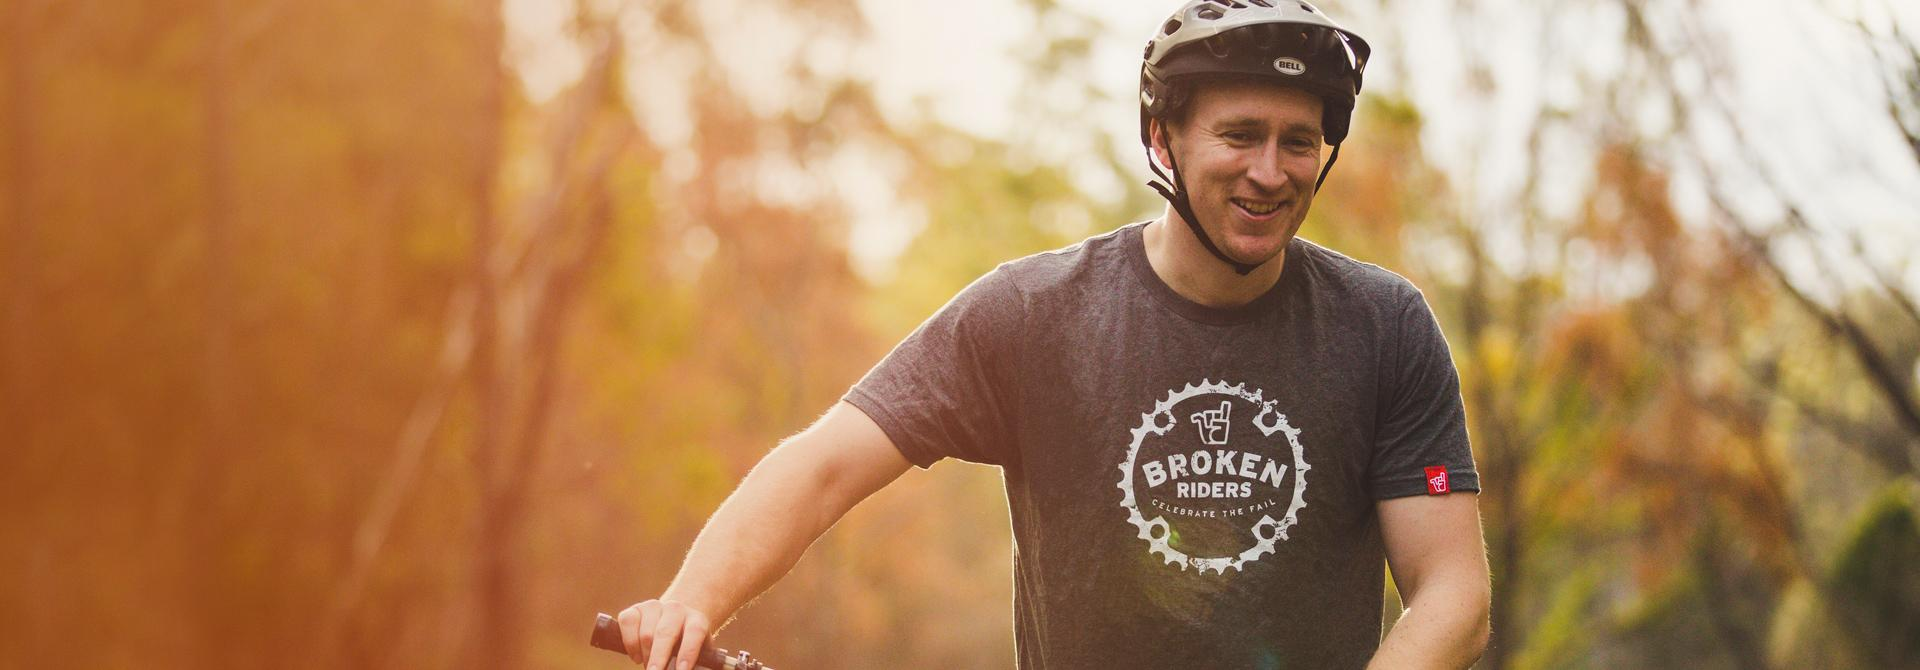 Broken Riders mountain bike apparel